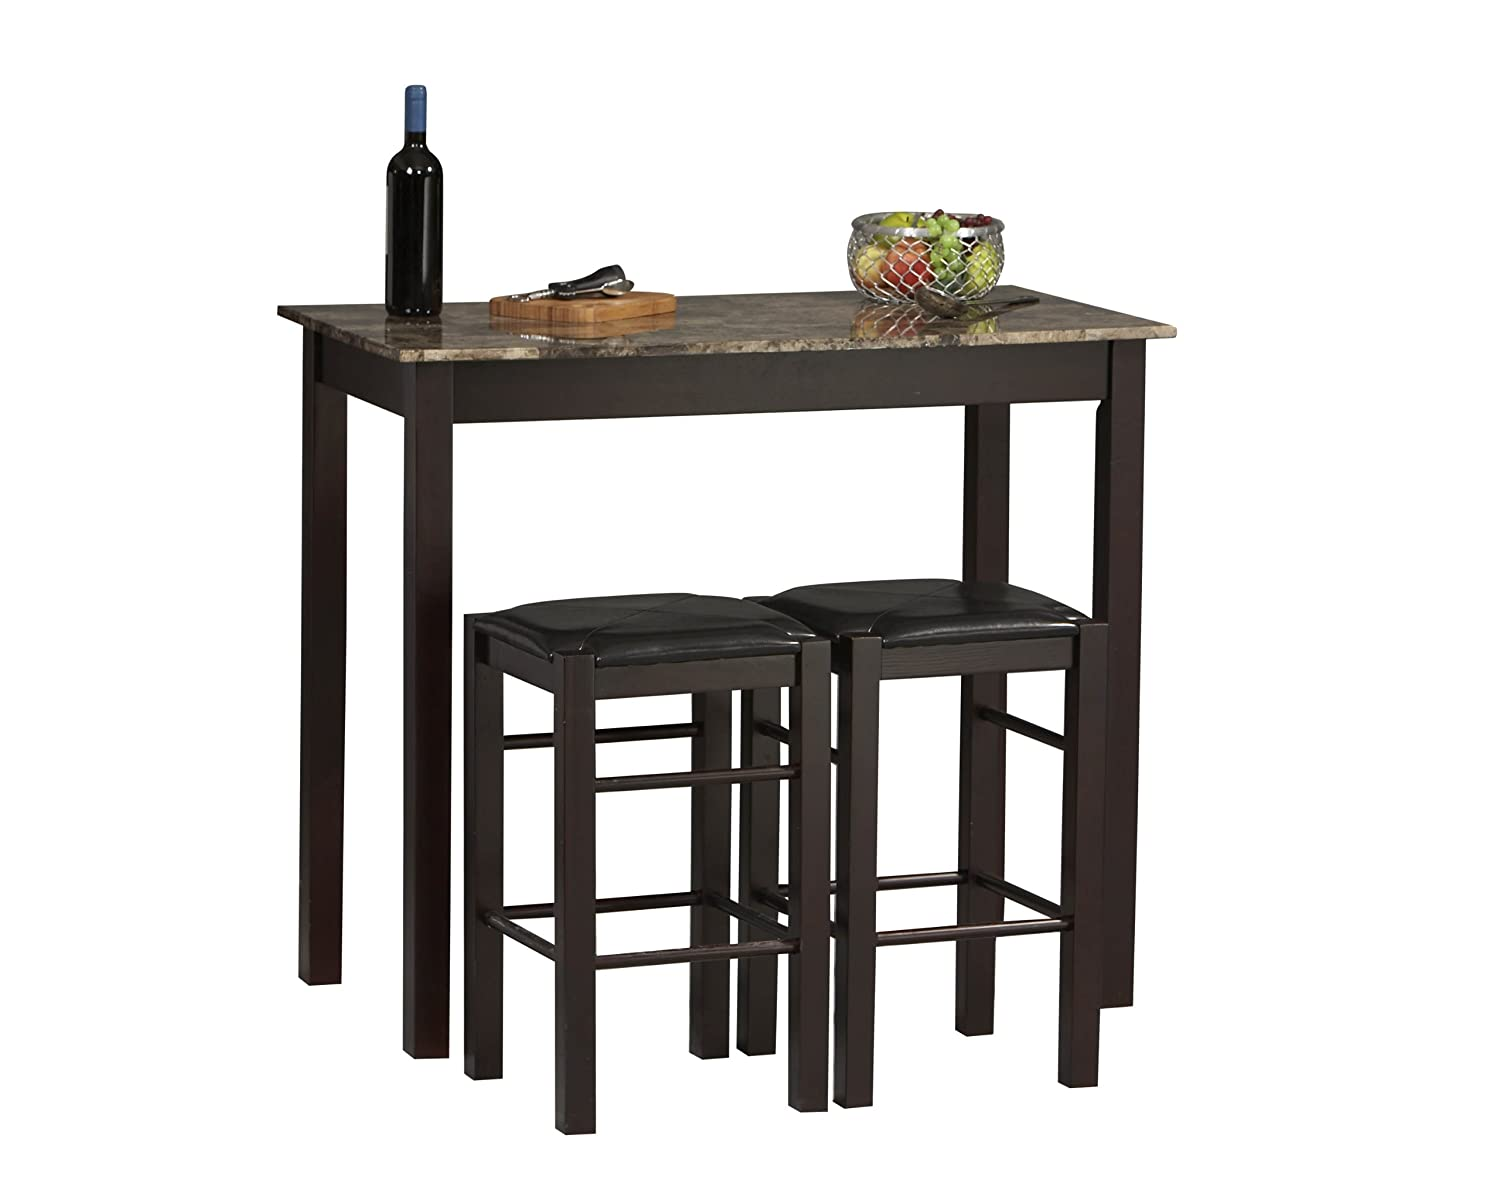 amazoncom linon tavern collection 3 piece table set tables - Kitchen Bar Table Set